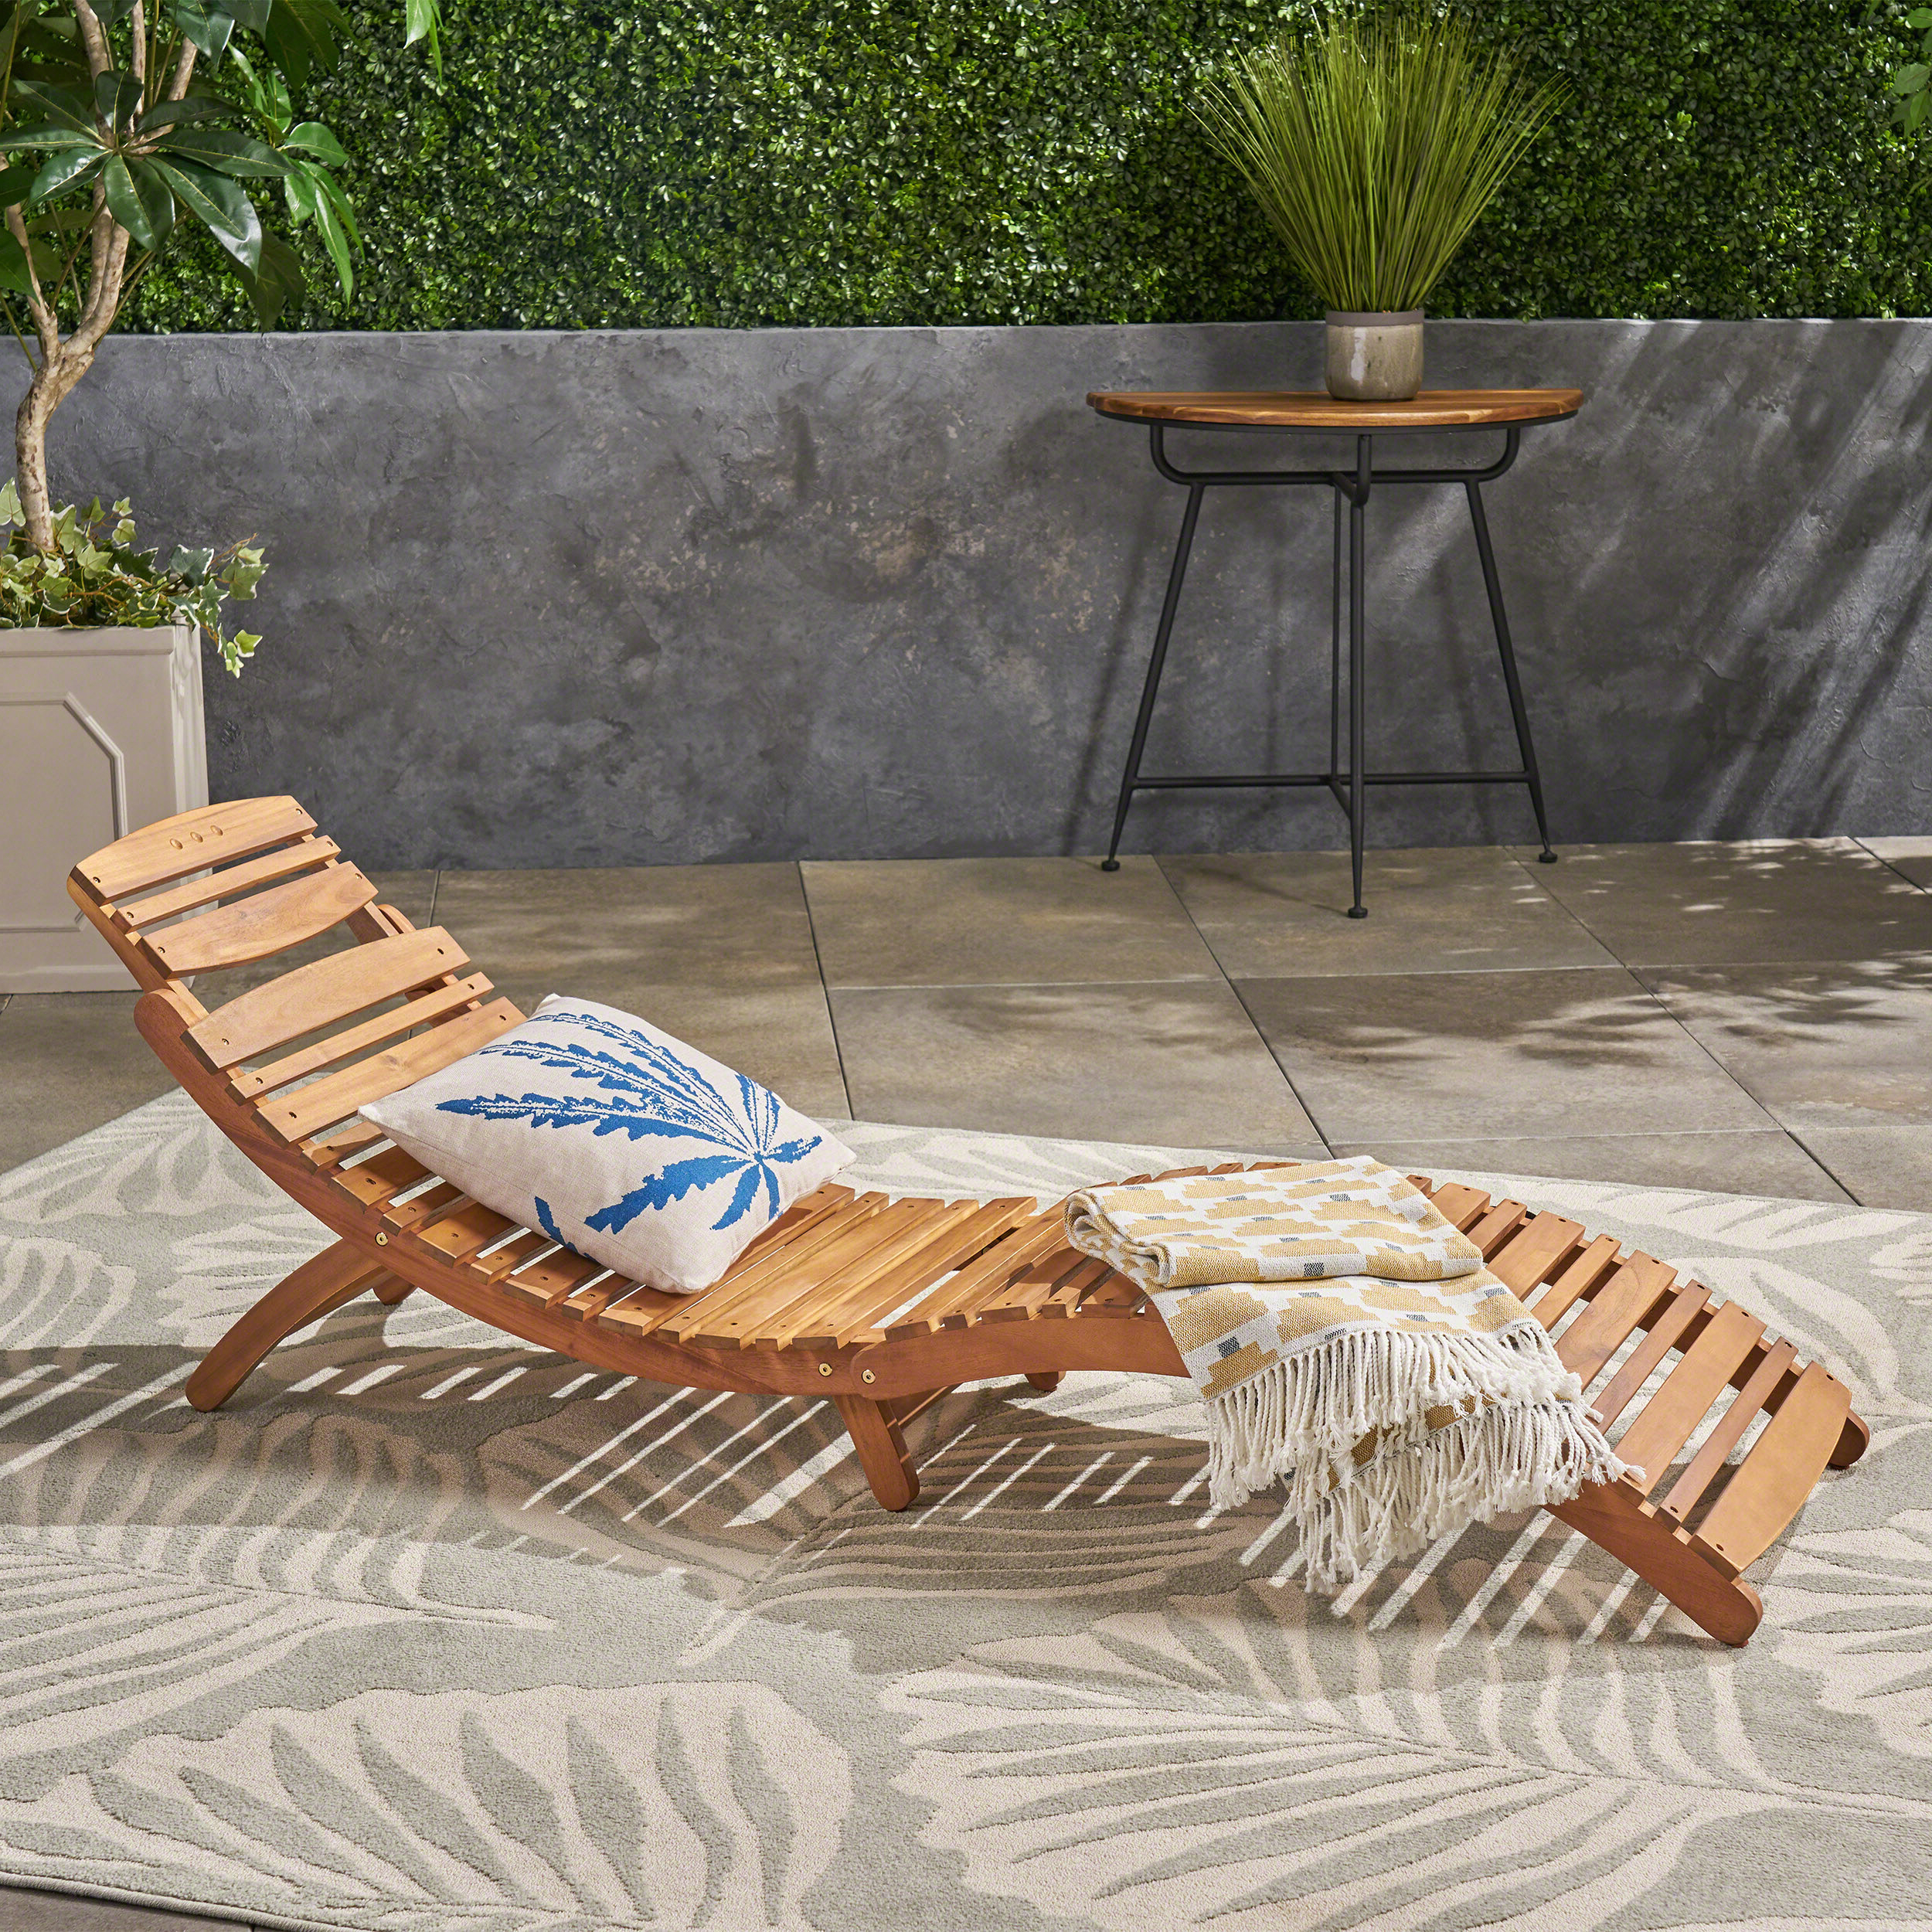 Tifany Wood Outdoor Chaise Lounge Throughout Most Popular Curved Folding Chaise Loungers (View 20 of 25)